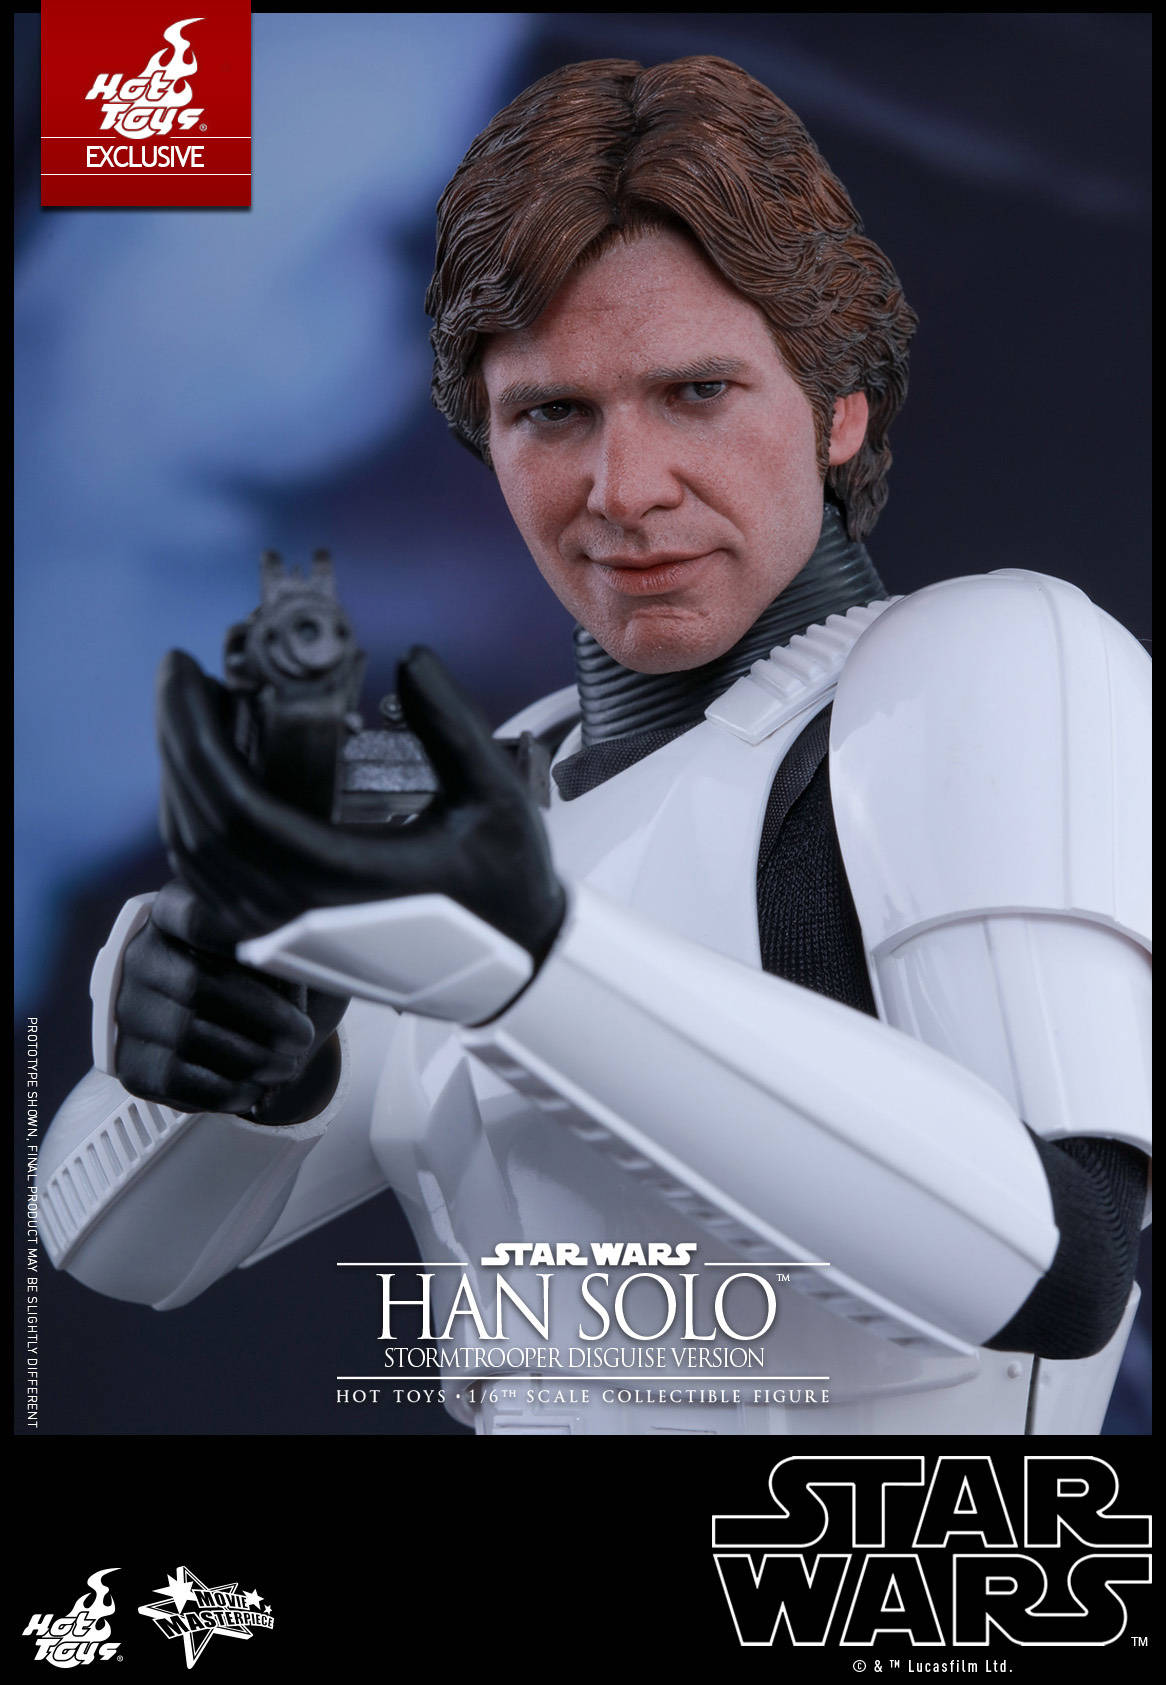 Hot-Toys---Star-Wars---Han-Solo-(Stormtrooper-Disguise-Version)-Collectible-Figure PR17